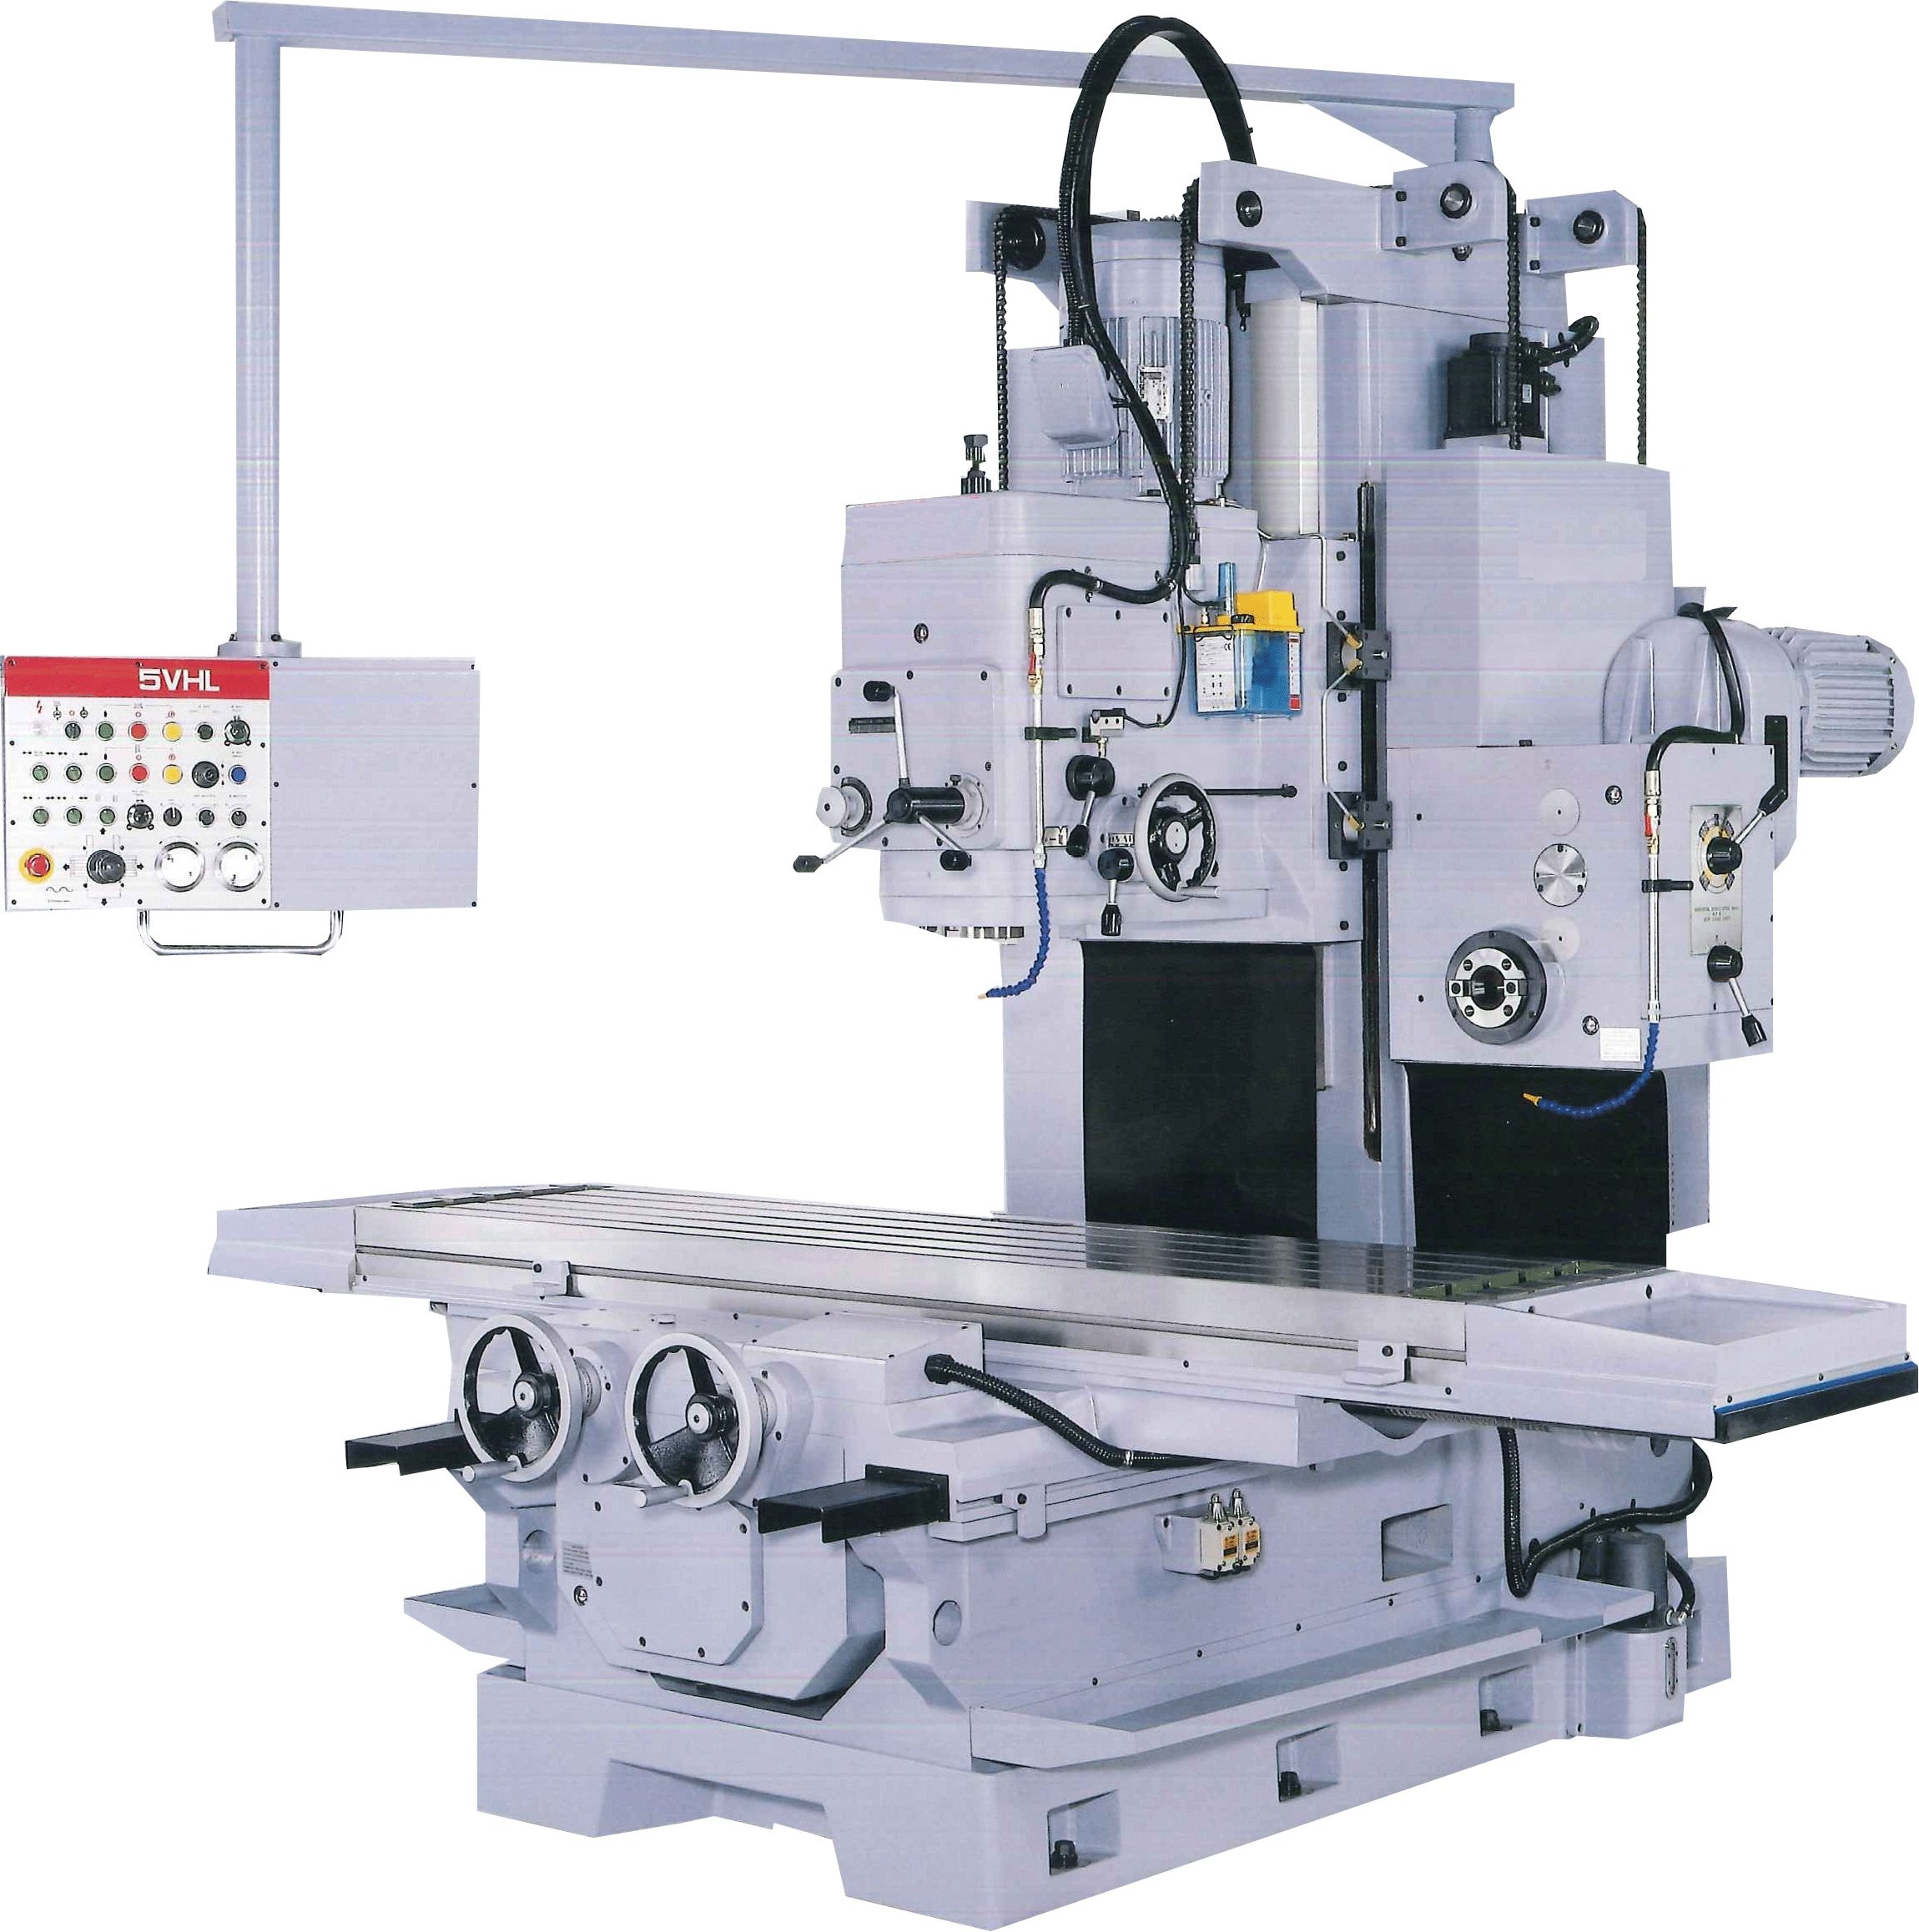 ACRA MODEL 5VHL HEAVY DUTY BED TYPE WITH HORIZONTAL & VERTICAL BORING & MILLING MACHINE